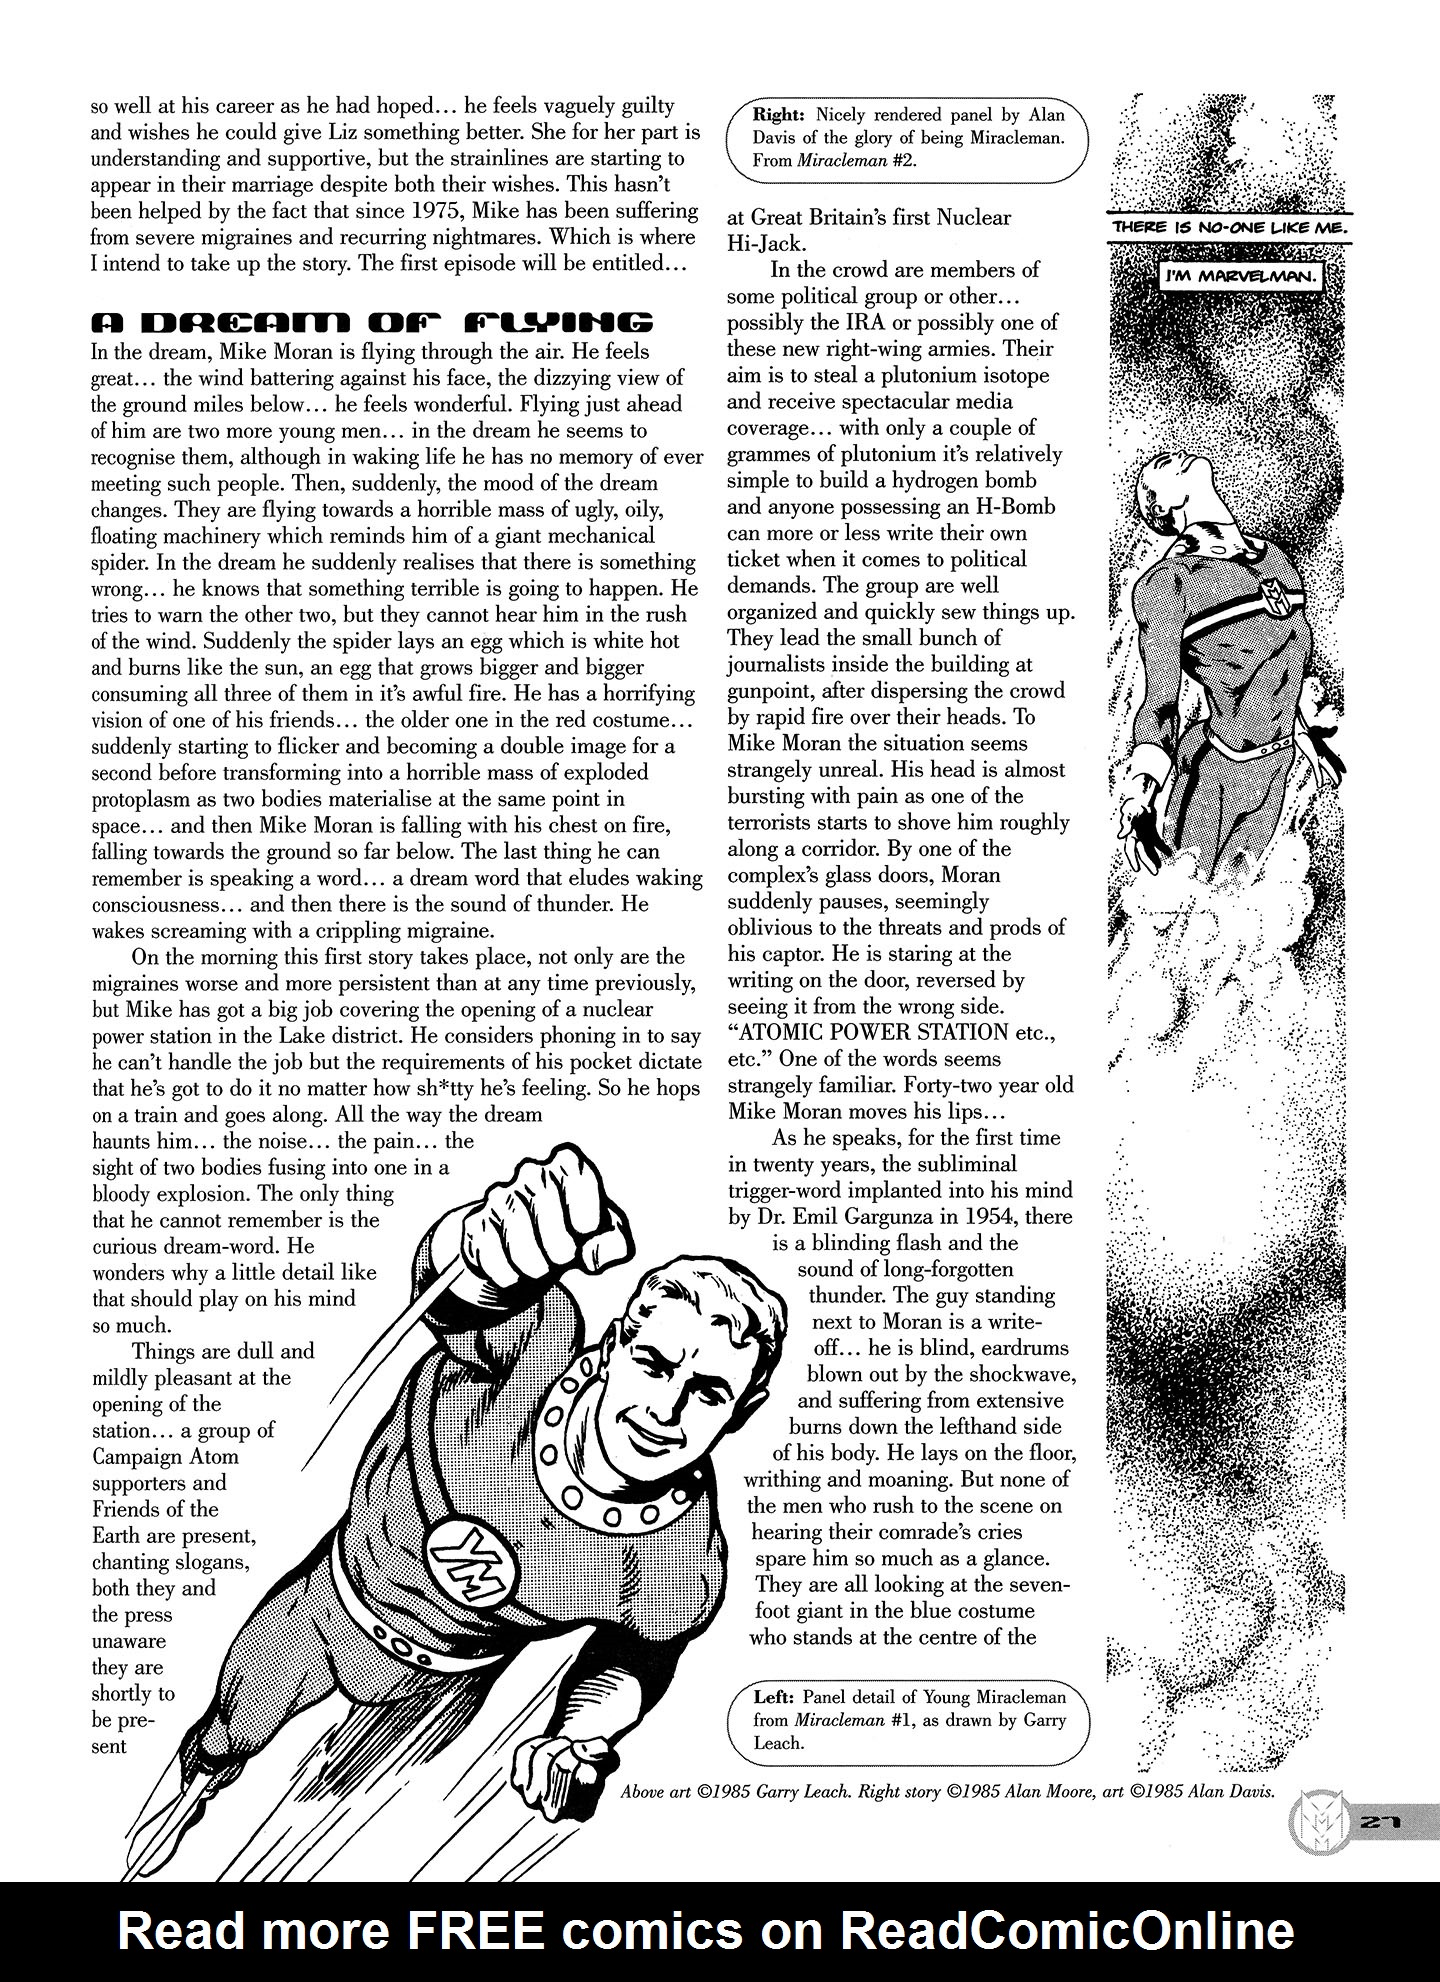 Read online Kimota!: The Miracleman Companion comic -  Issue # Full - 28